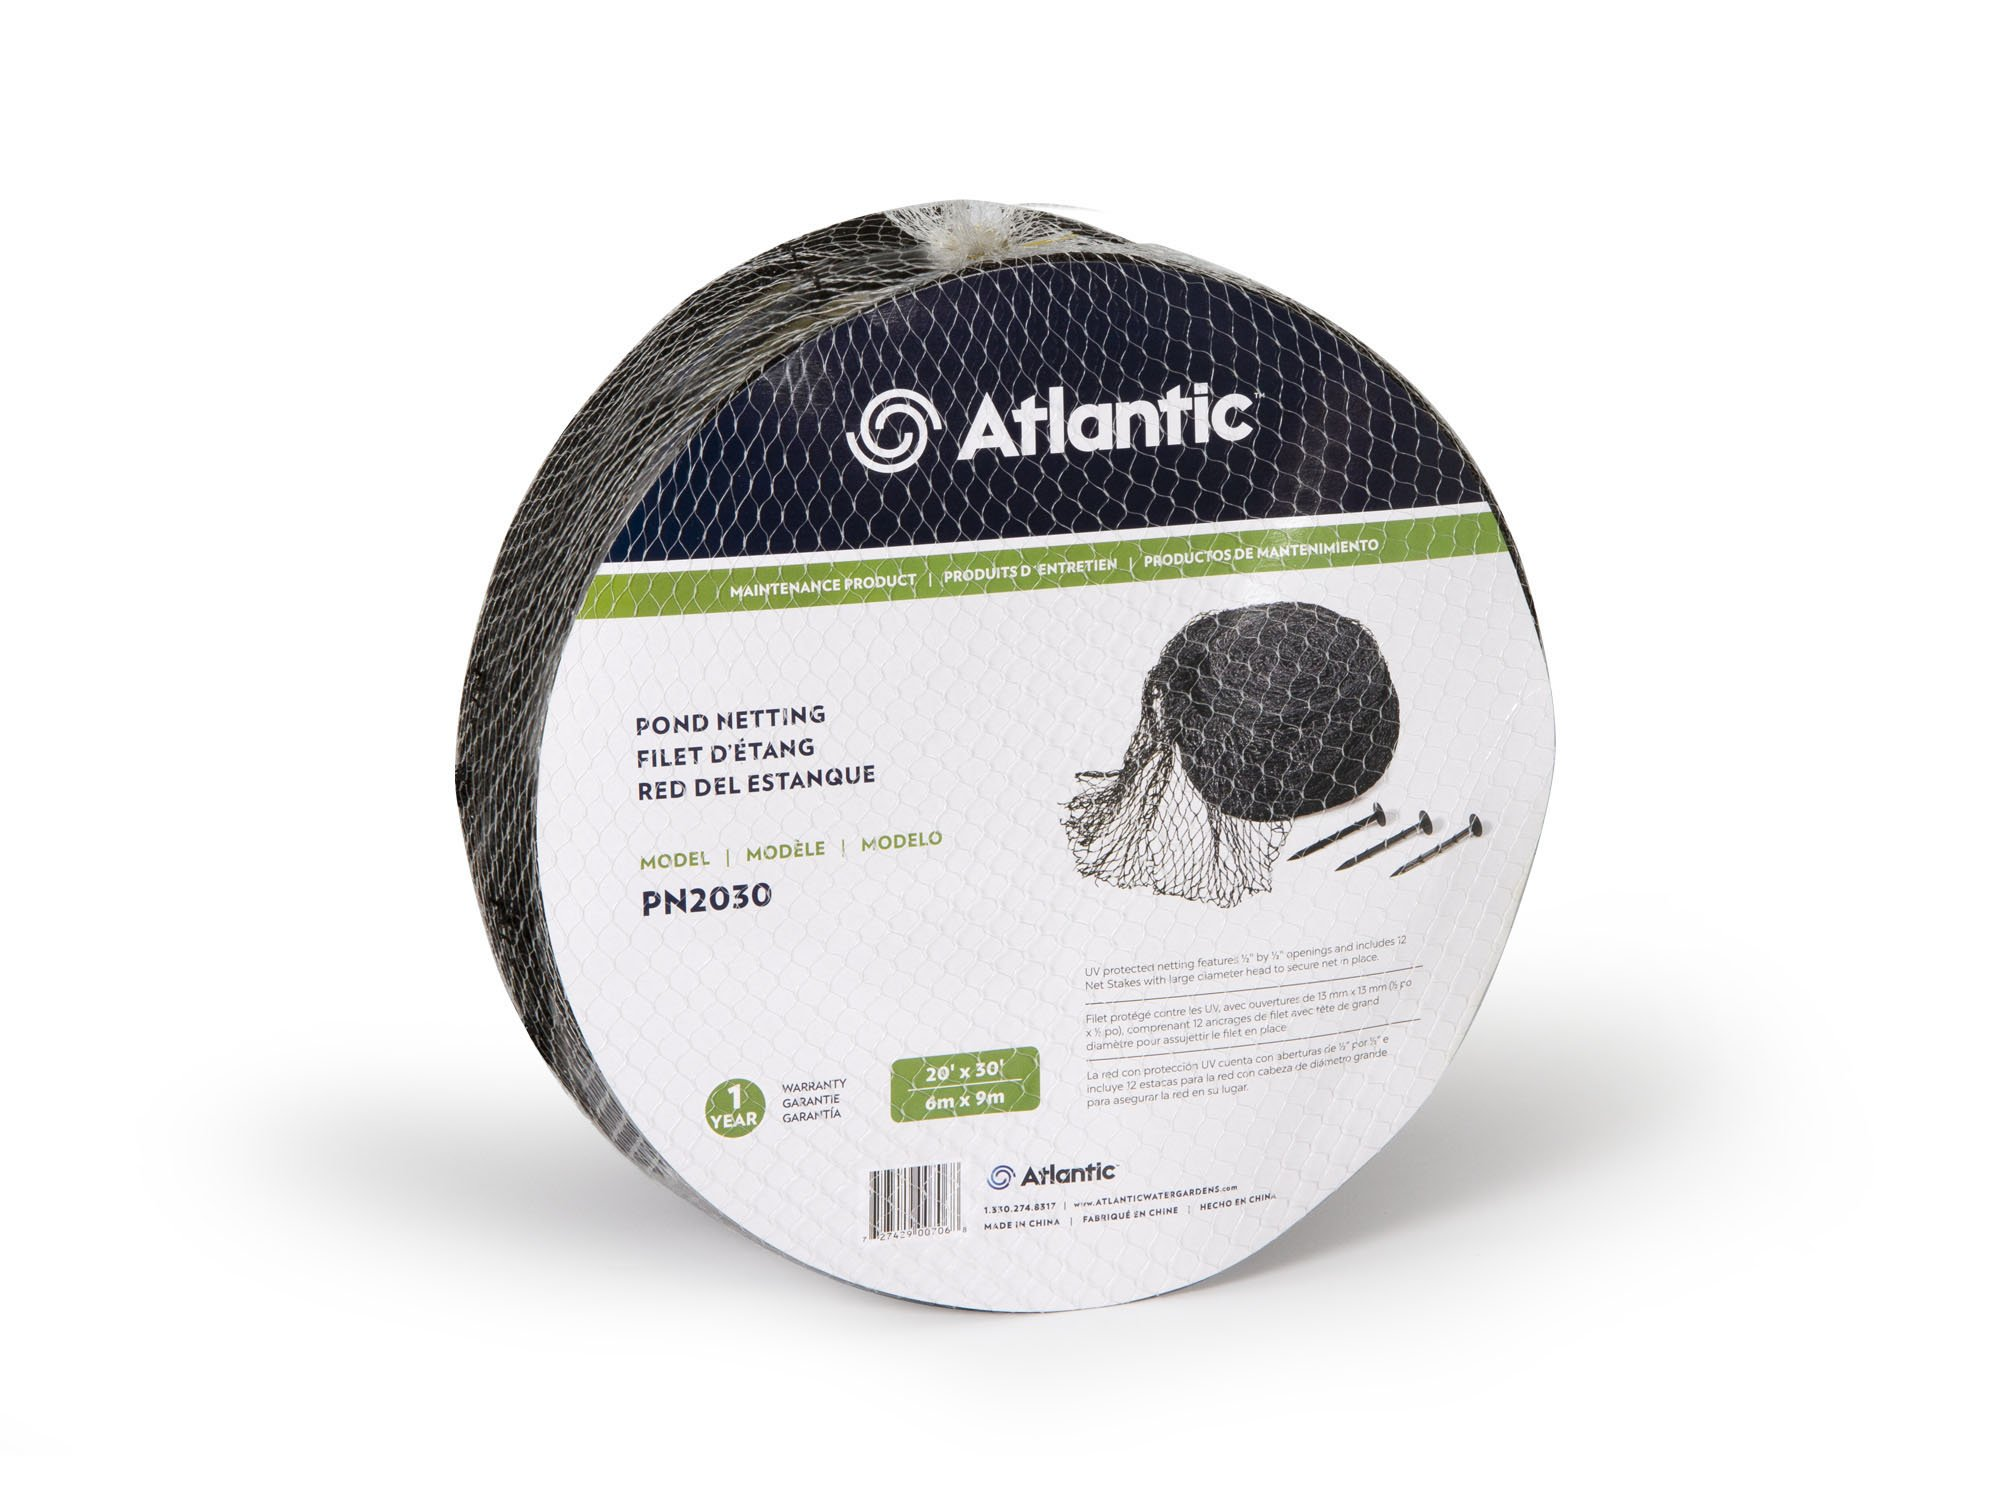 Atlantic Water Gardens Pond Cover Netting Size: 20 feet x 30 feet by Atlantic Water Gardens